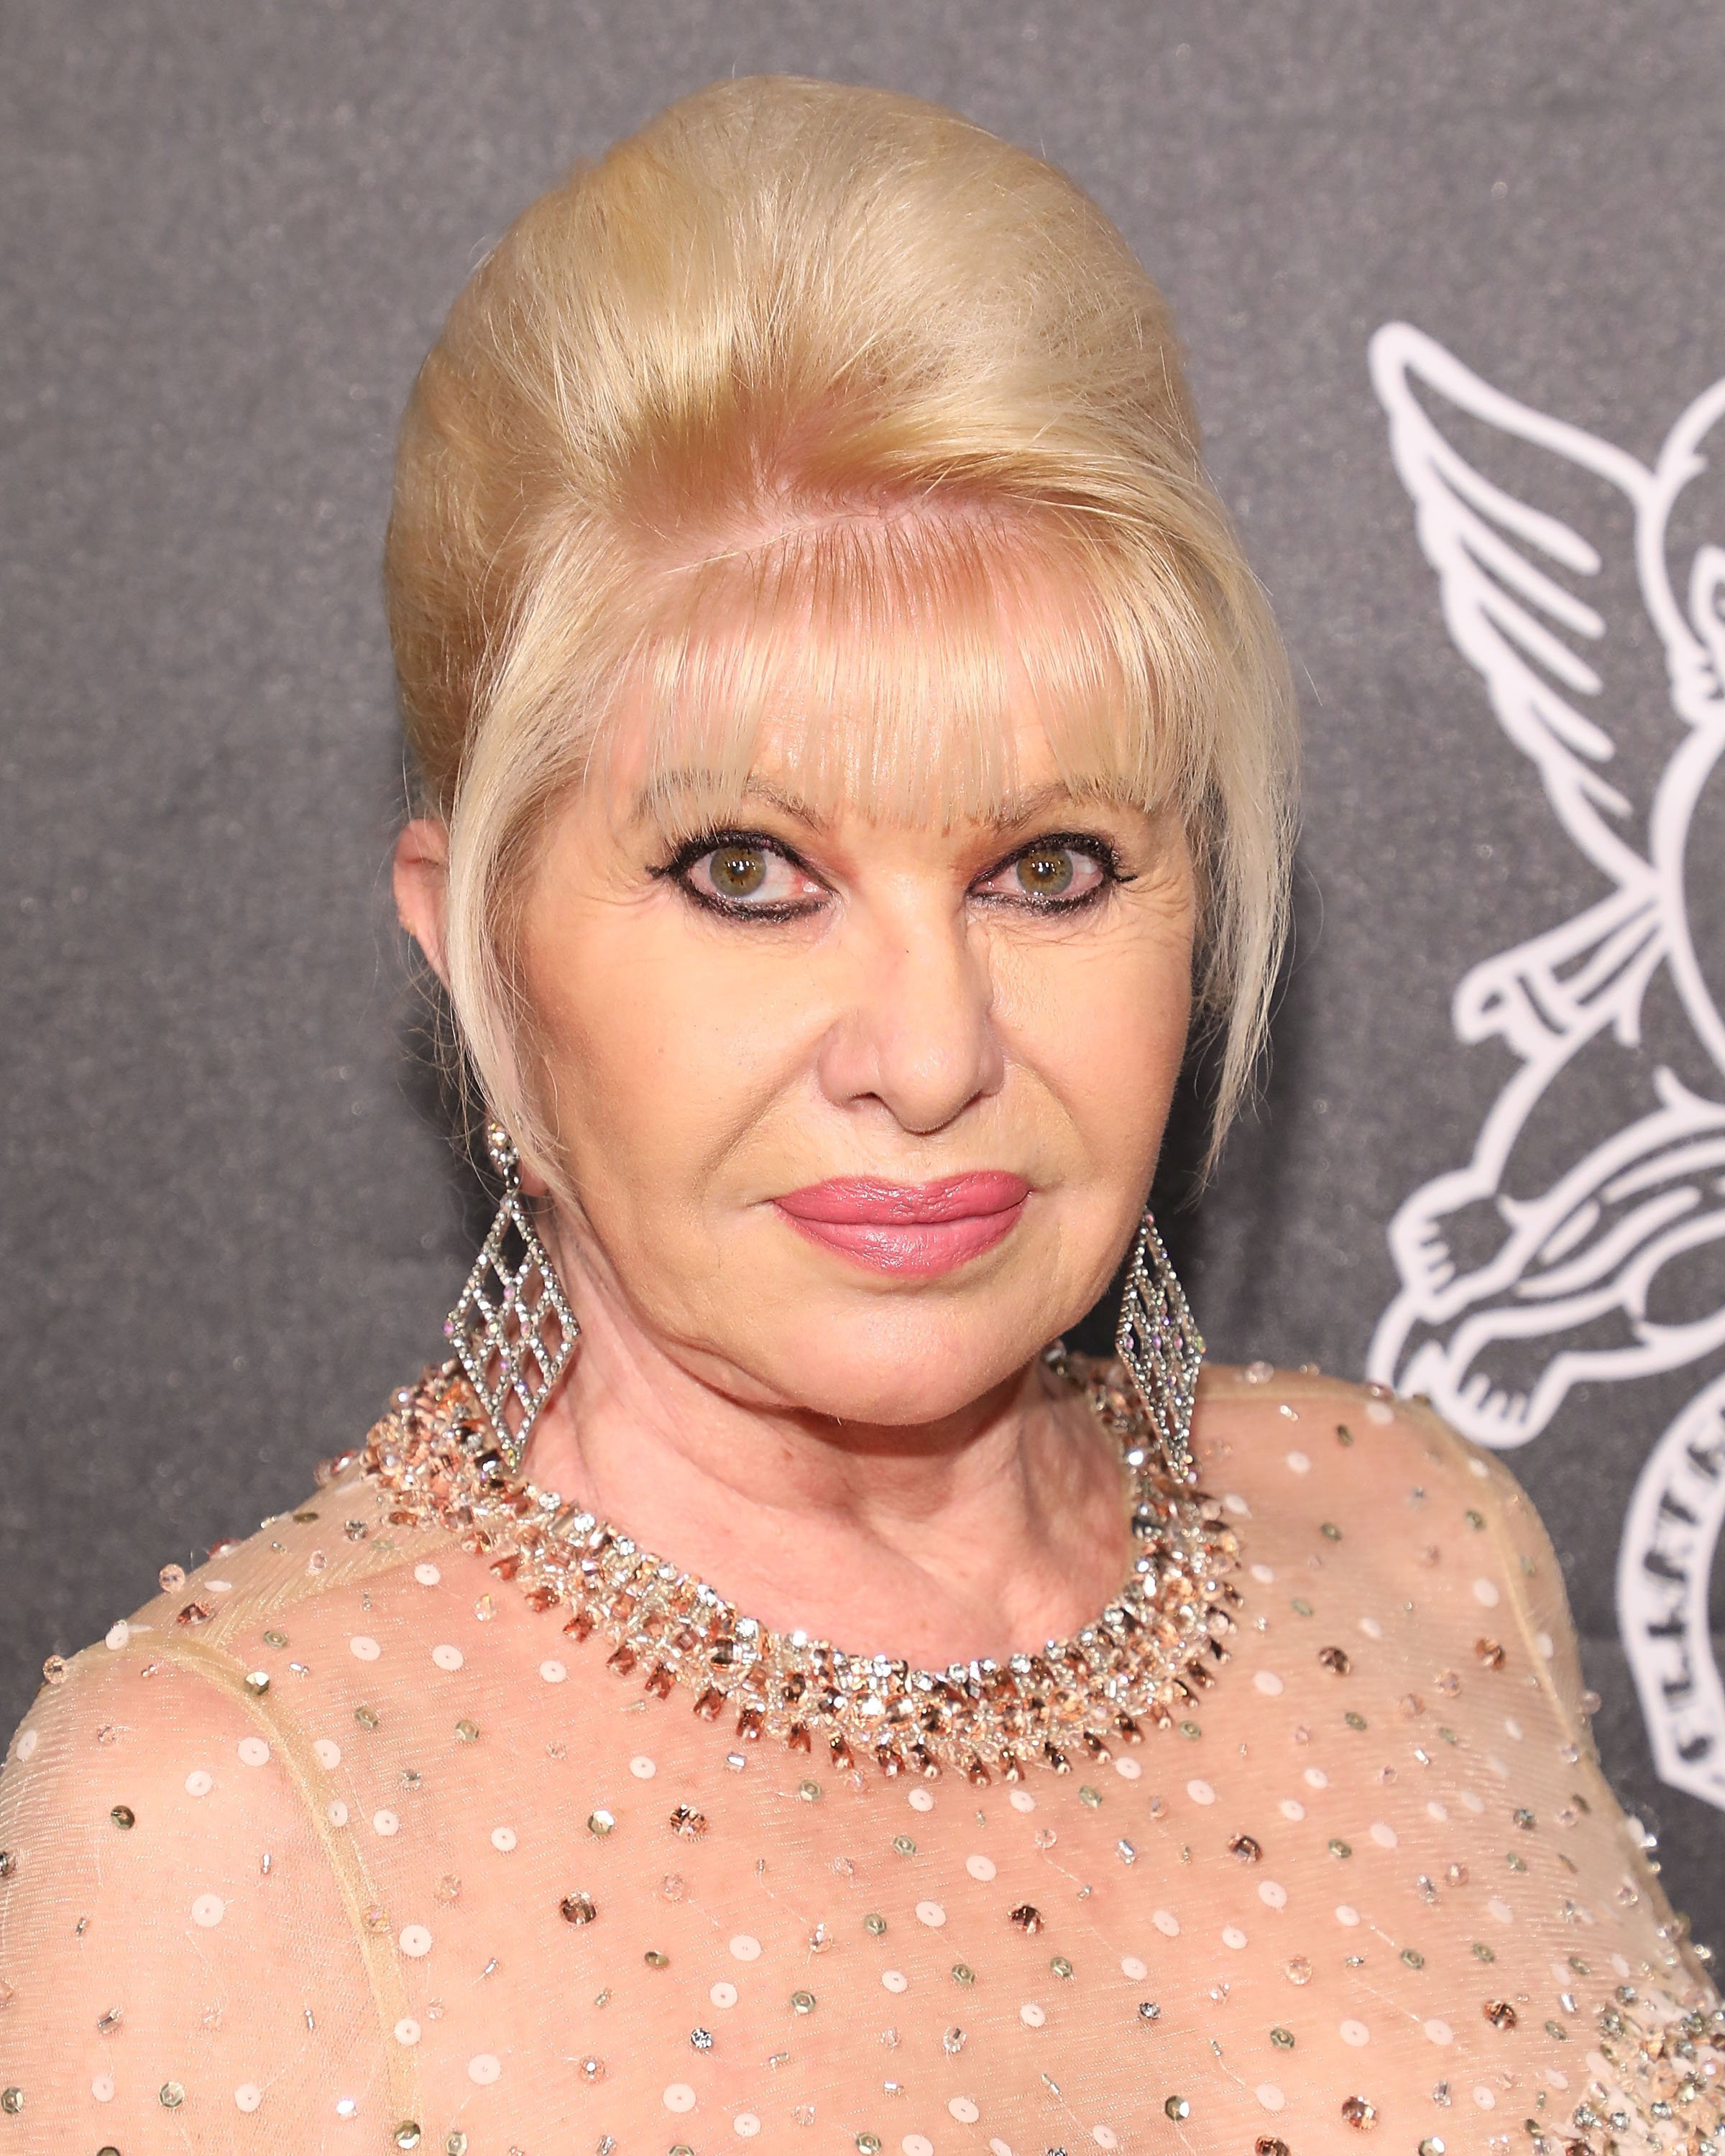 Ivana Trump attends the 2018 Angel Ball at Cipriani Wall Street on October 22, 2018 in New York City   Photo: Getty Images